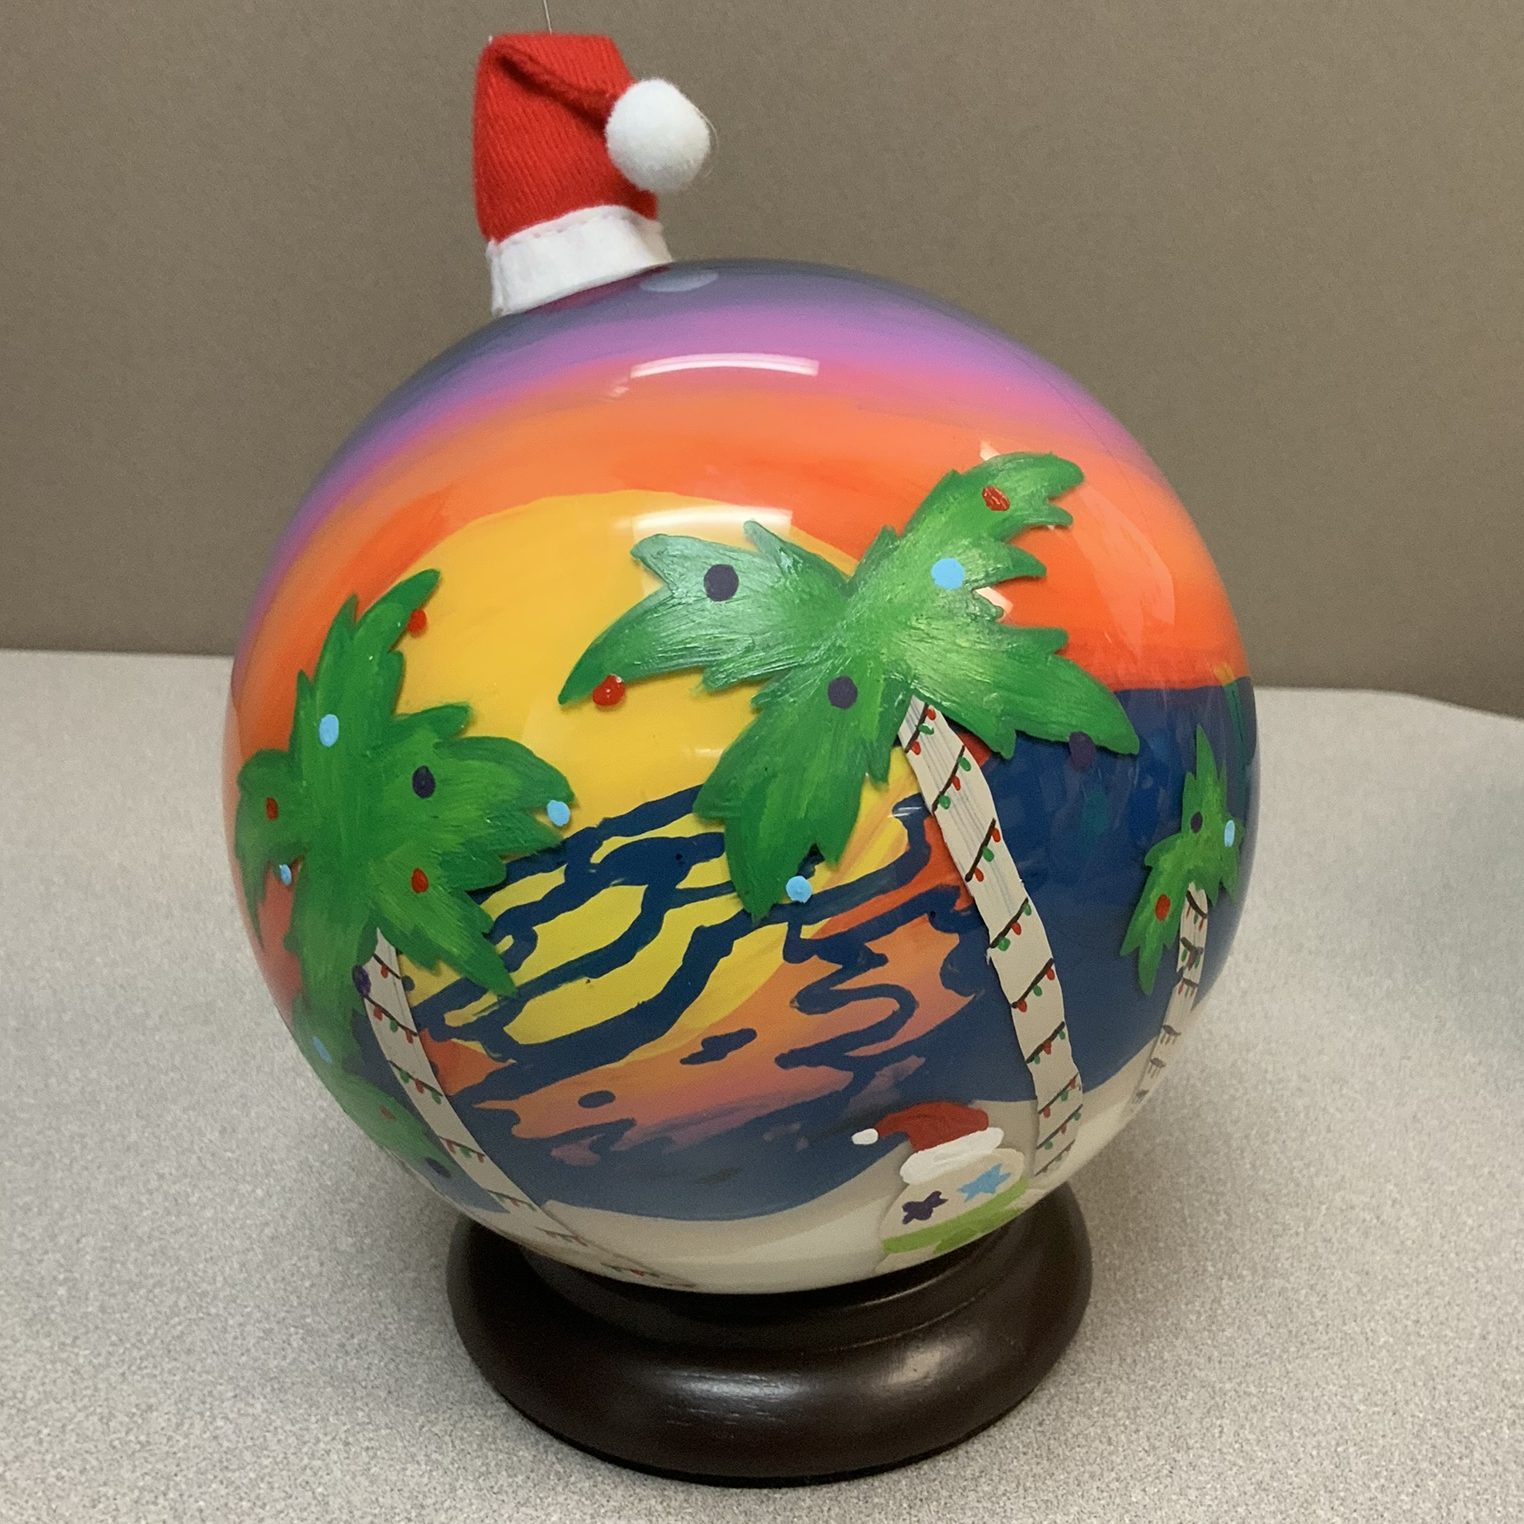 17e01c3f With so much natural beauty, students chose the theme of nature for our  ornaments. The students used exterior house paint, polymer clay, and found  objects ...